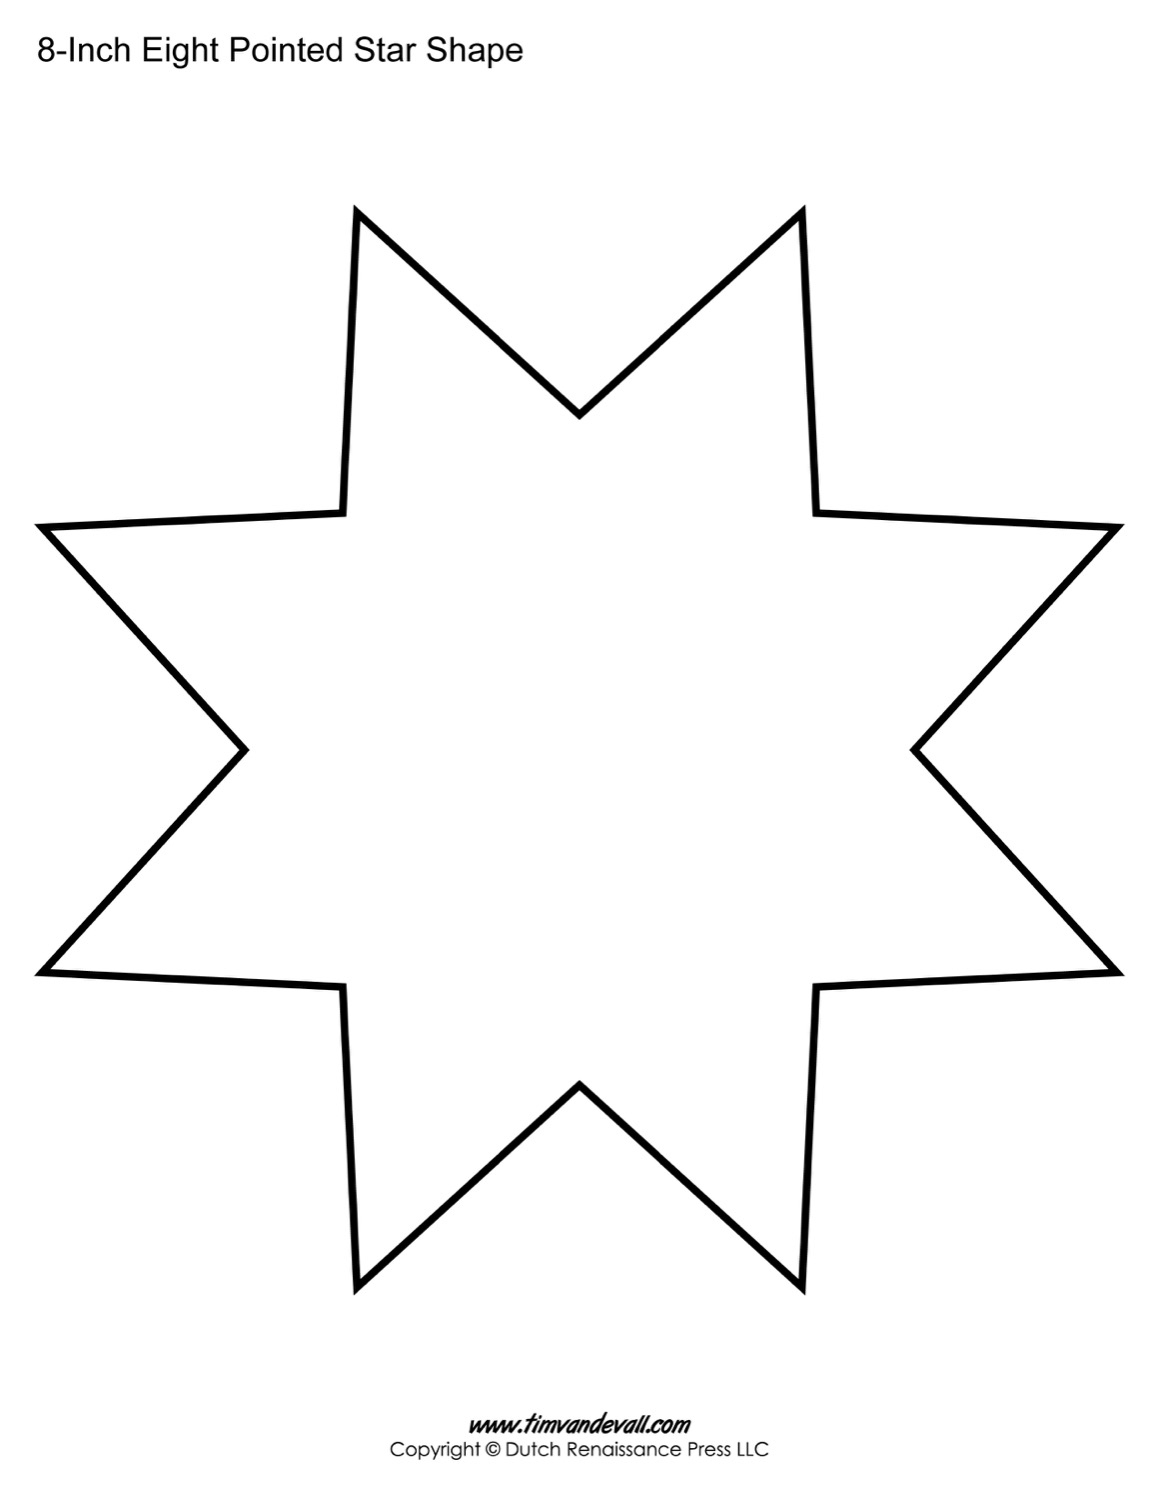 Free Eight Pointed Star Shapes